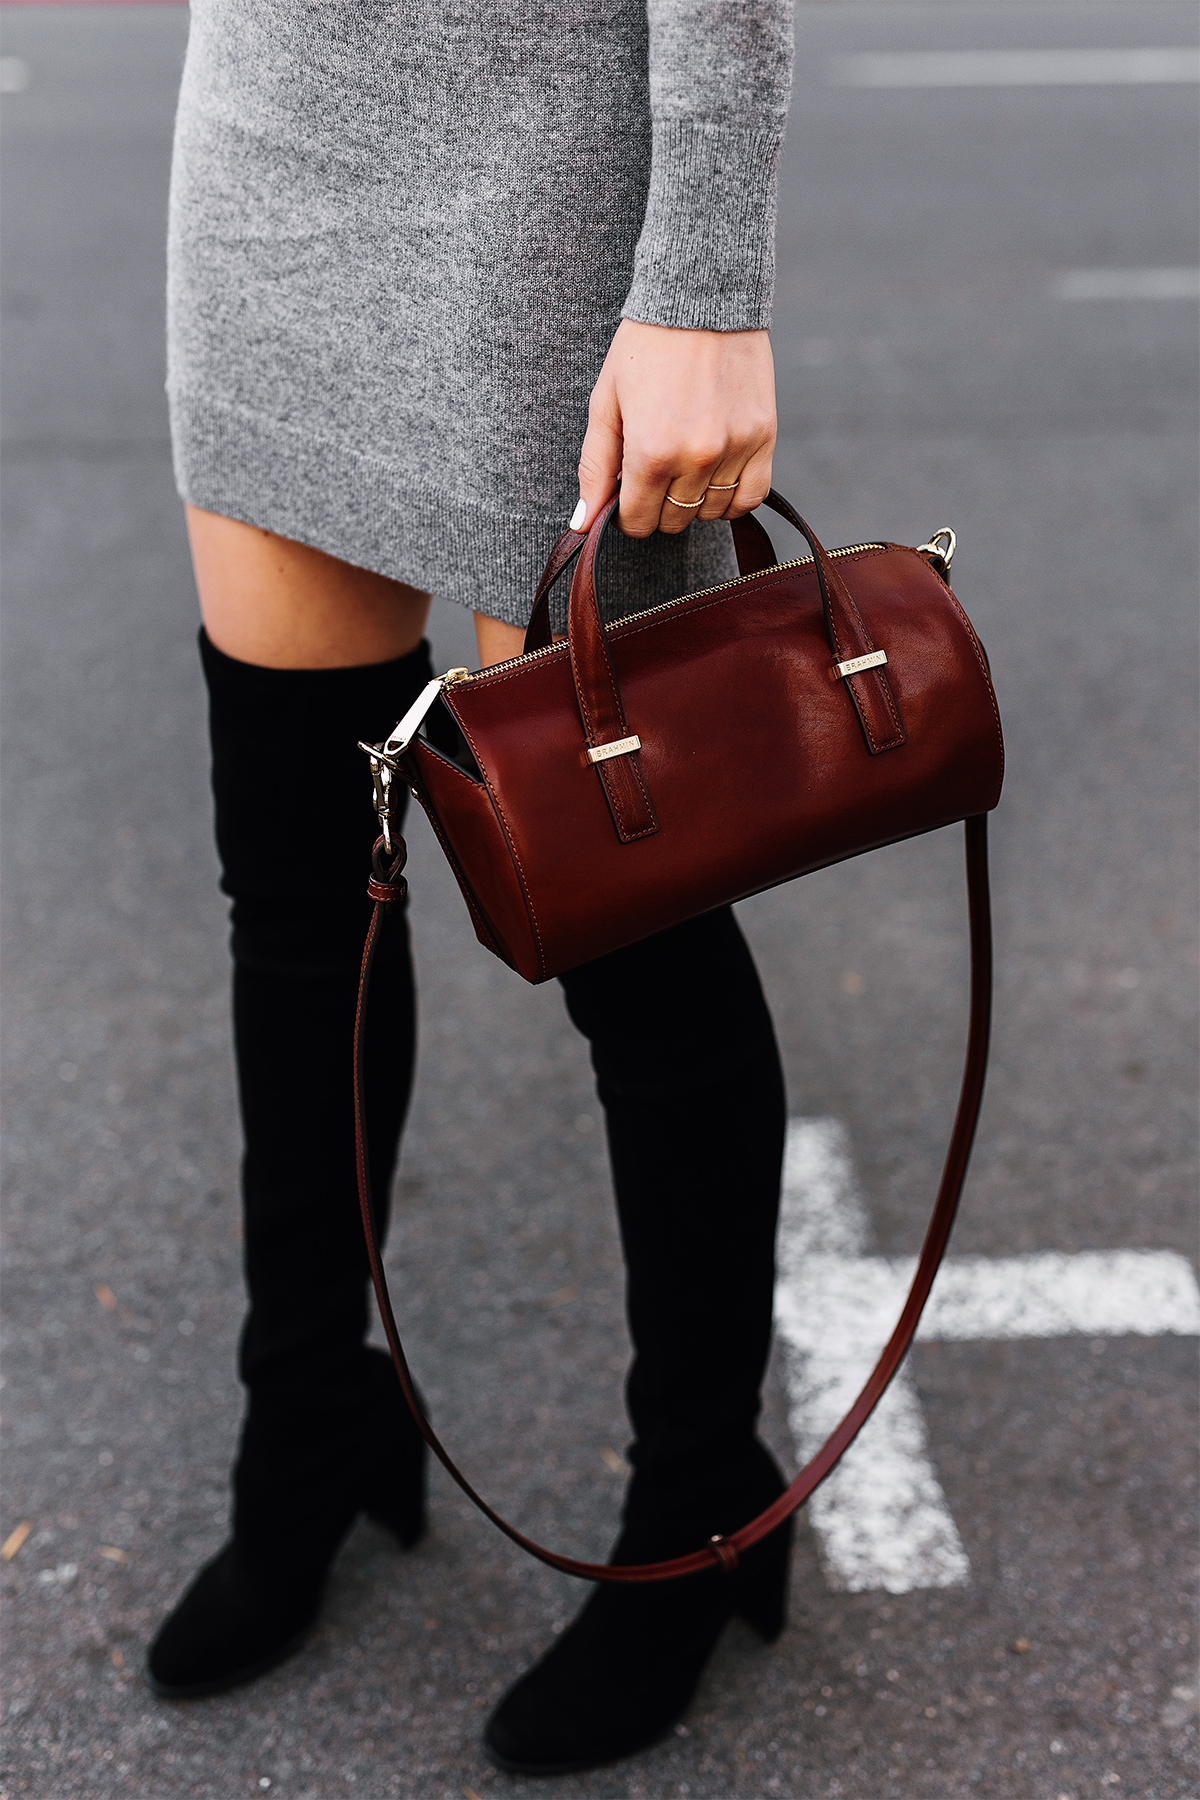 Woman Wearing Stuart Weitzman Black Over the Knee Boots Brahmin Brown Crossbody Handbag Grey Sweater Dress Fashion Jackson San Diego Fashion Blogger Street Style